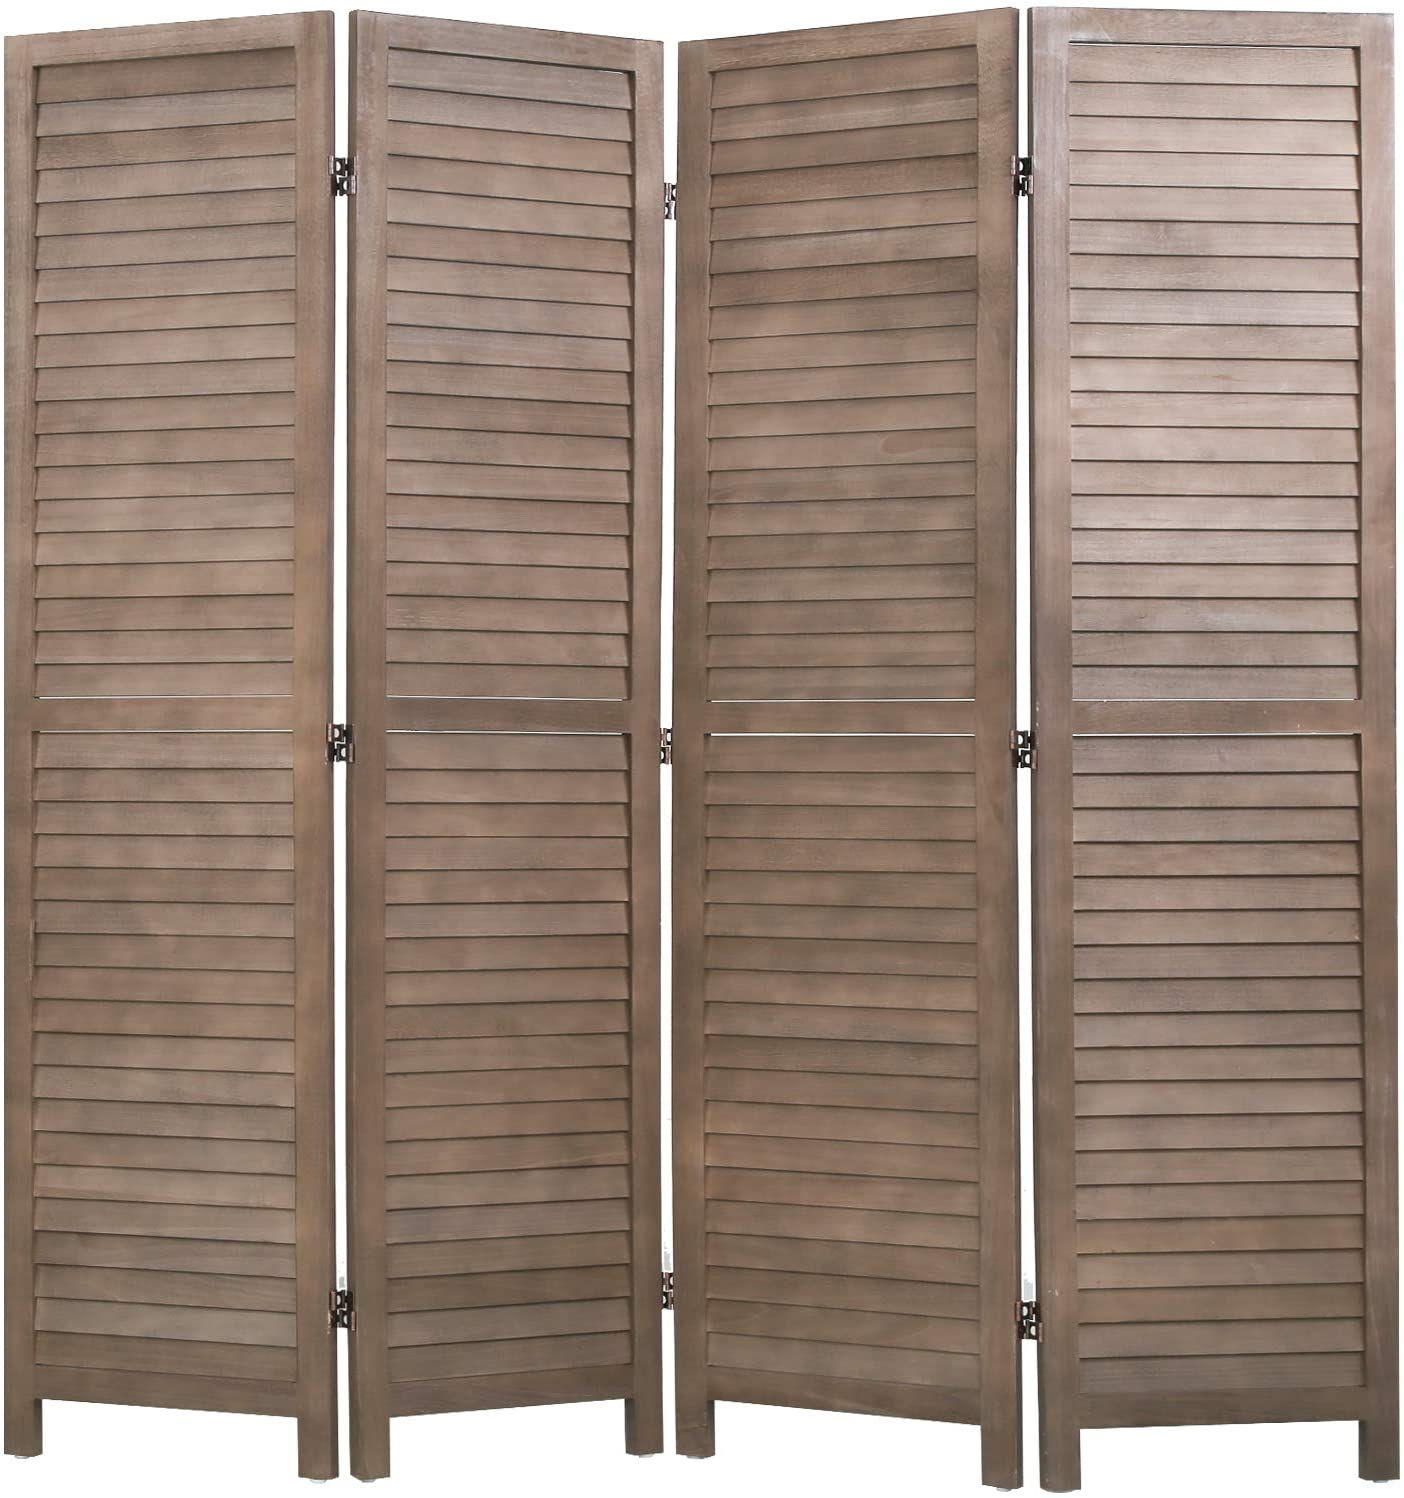 4 Panel Wood Room Divider 5.75 Ft Tall Privacy Wall Divider 68.9